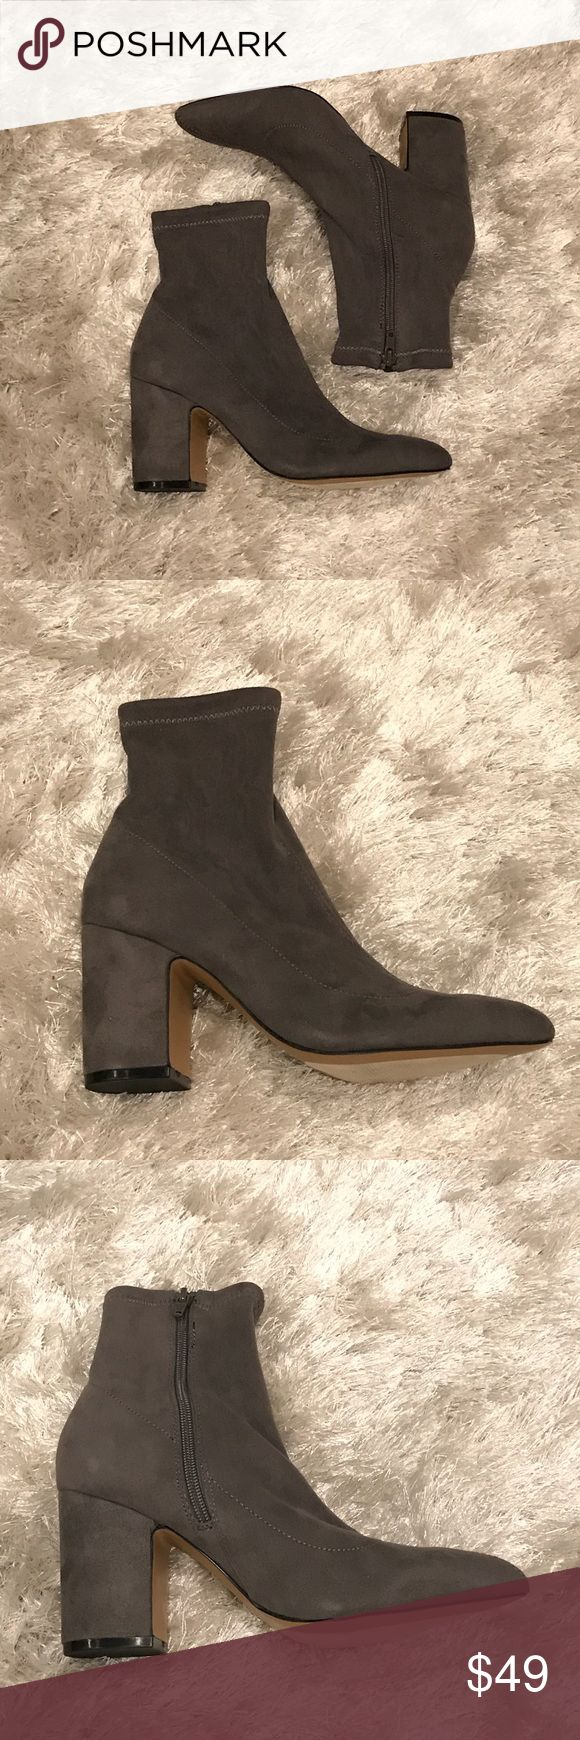 New Steve Madden Lolli Booties Brand new. No box, these were tried on in store only but too small for me. Comfy and chic! Steve Madden Shoes Ankle Boots & Booties